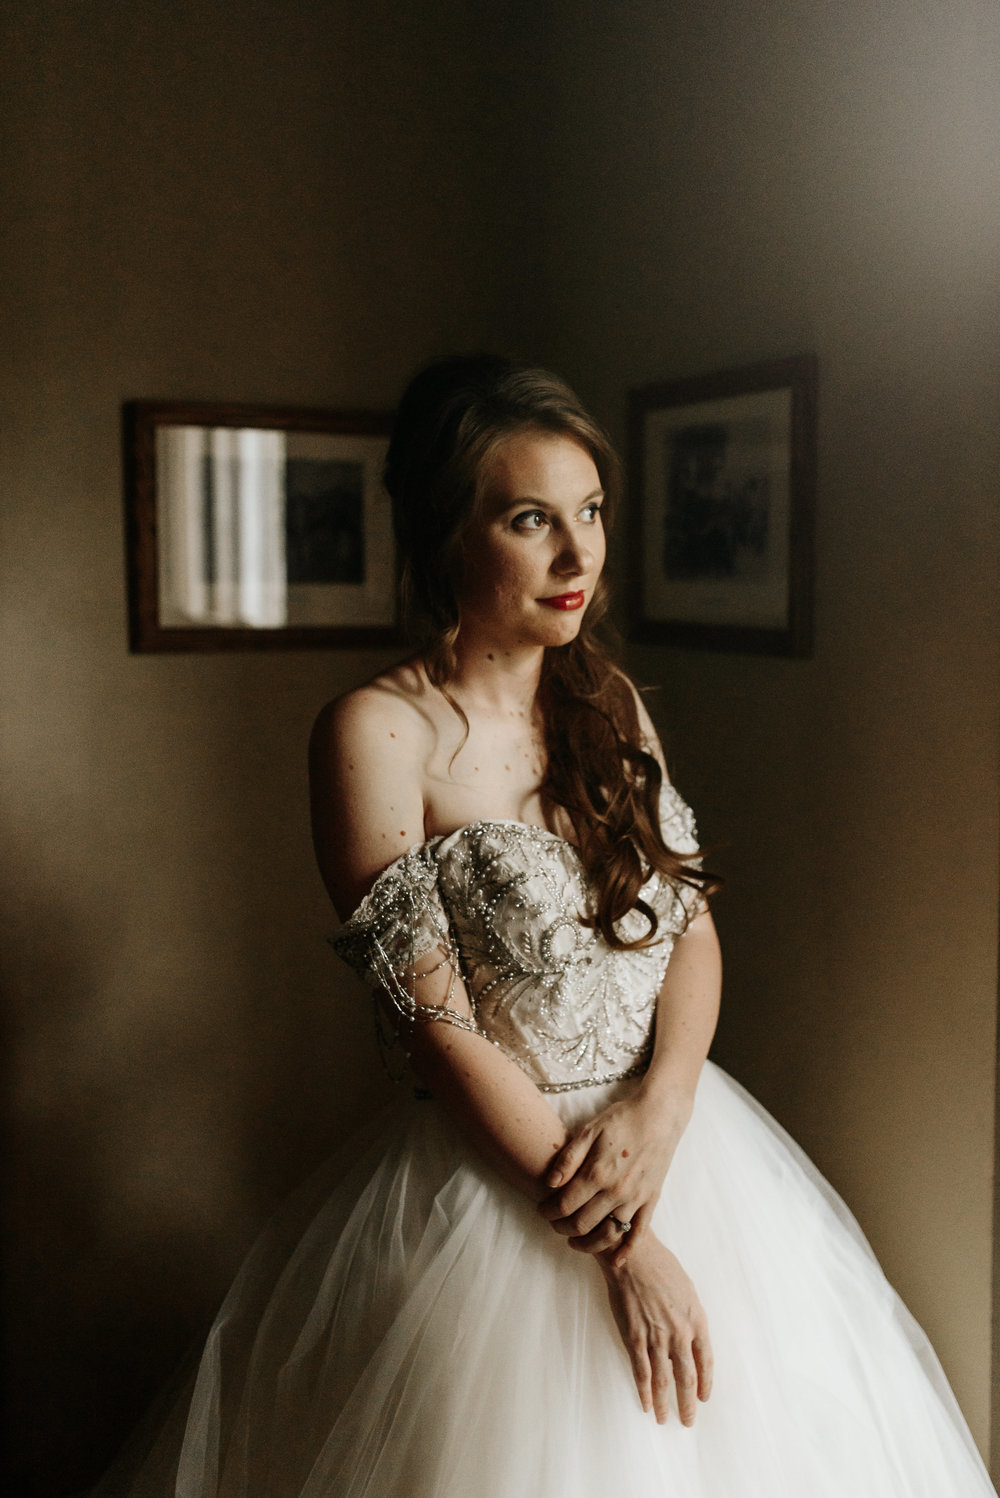 Grant-Station-Styled-Shoot-Whimsical-Moody-Fairytale-Wedding-Photography-by-V-9666.jpg